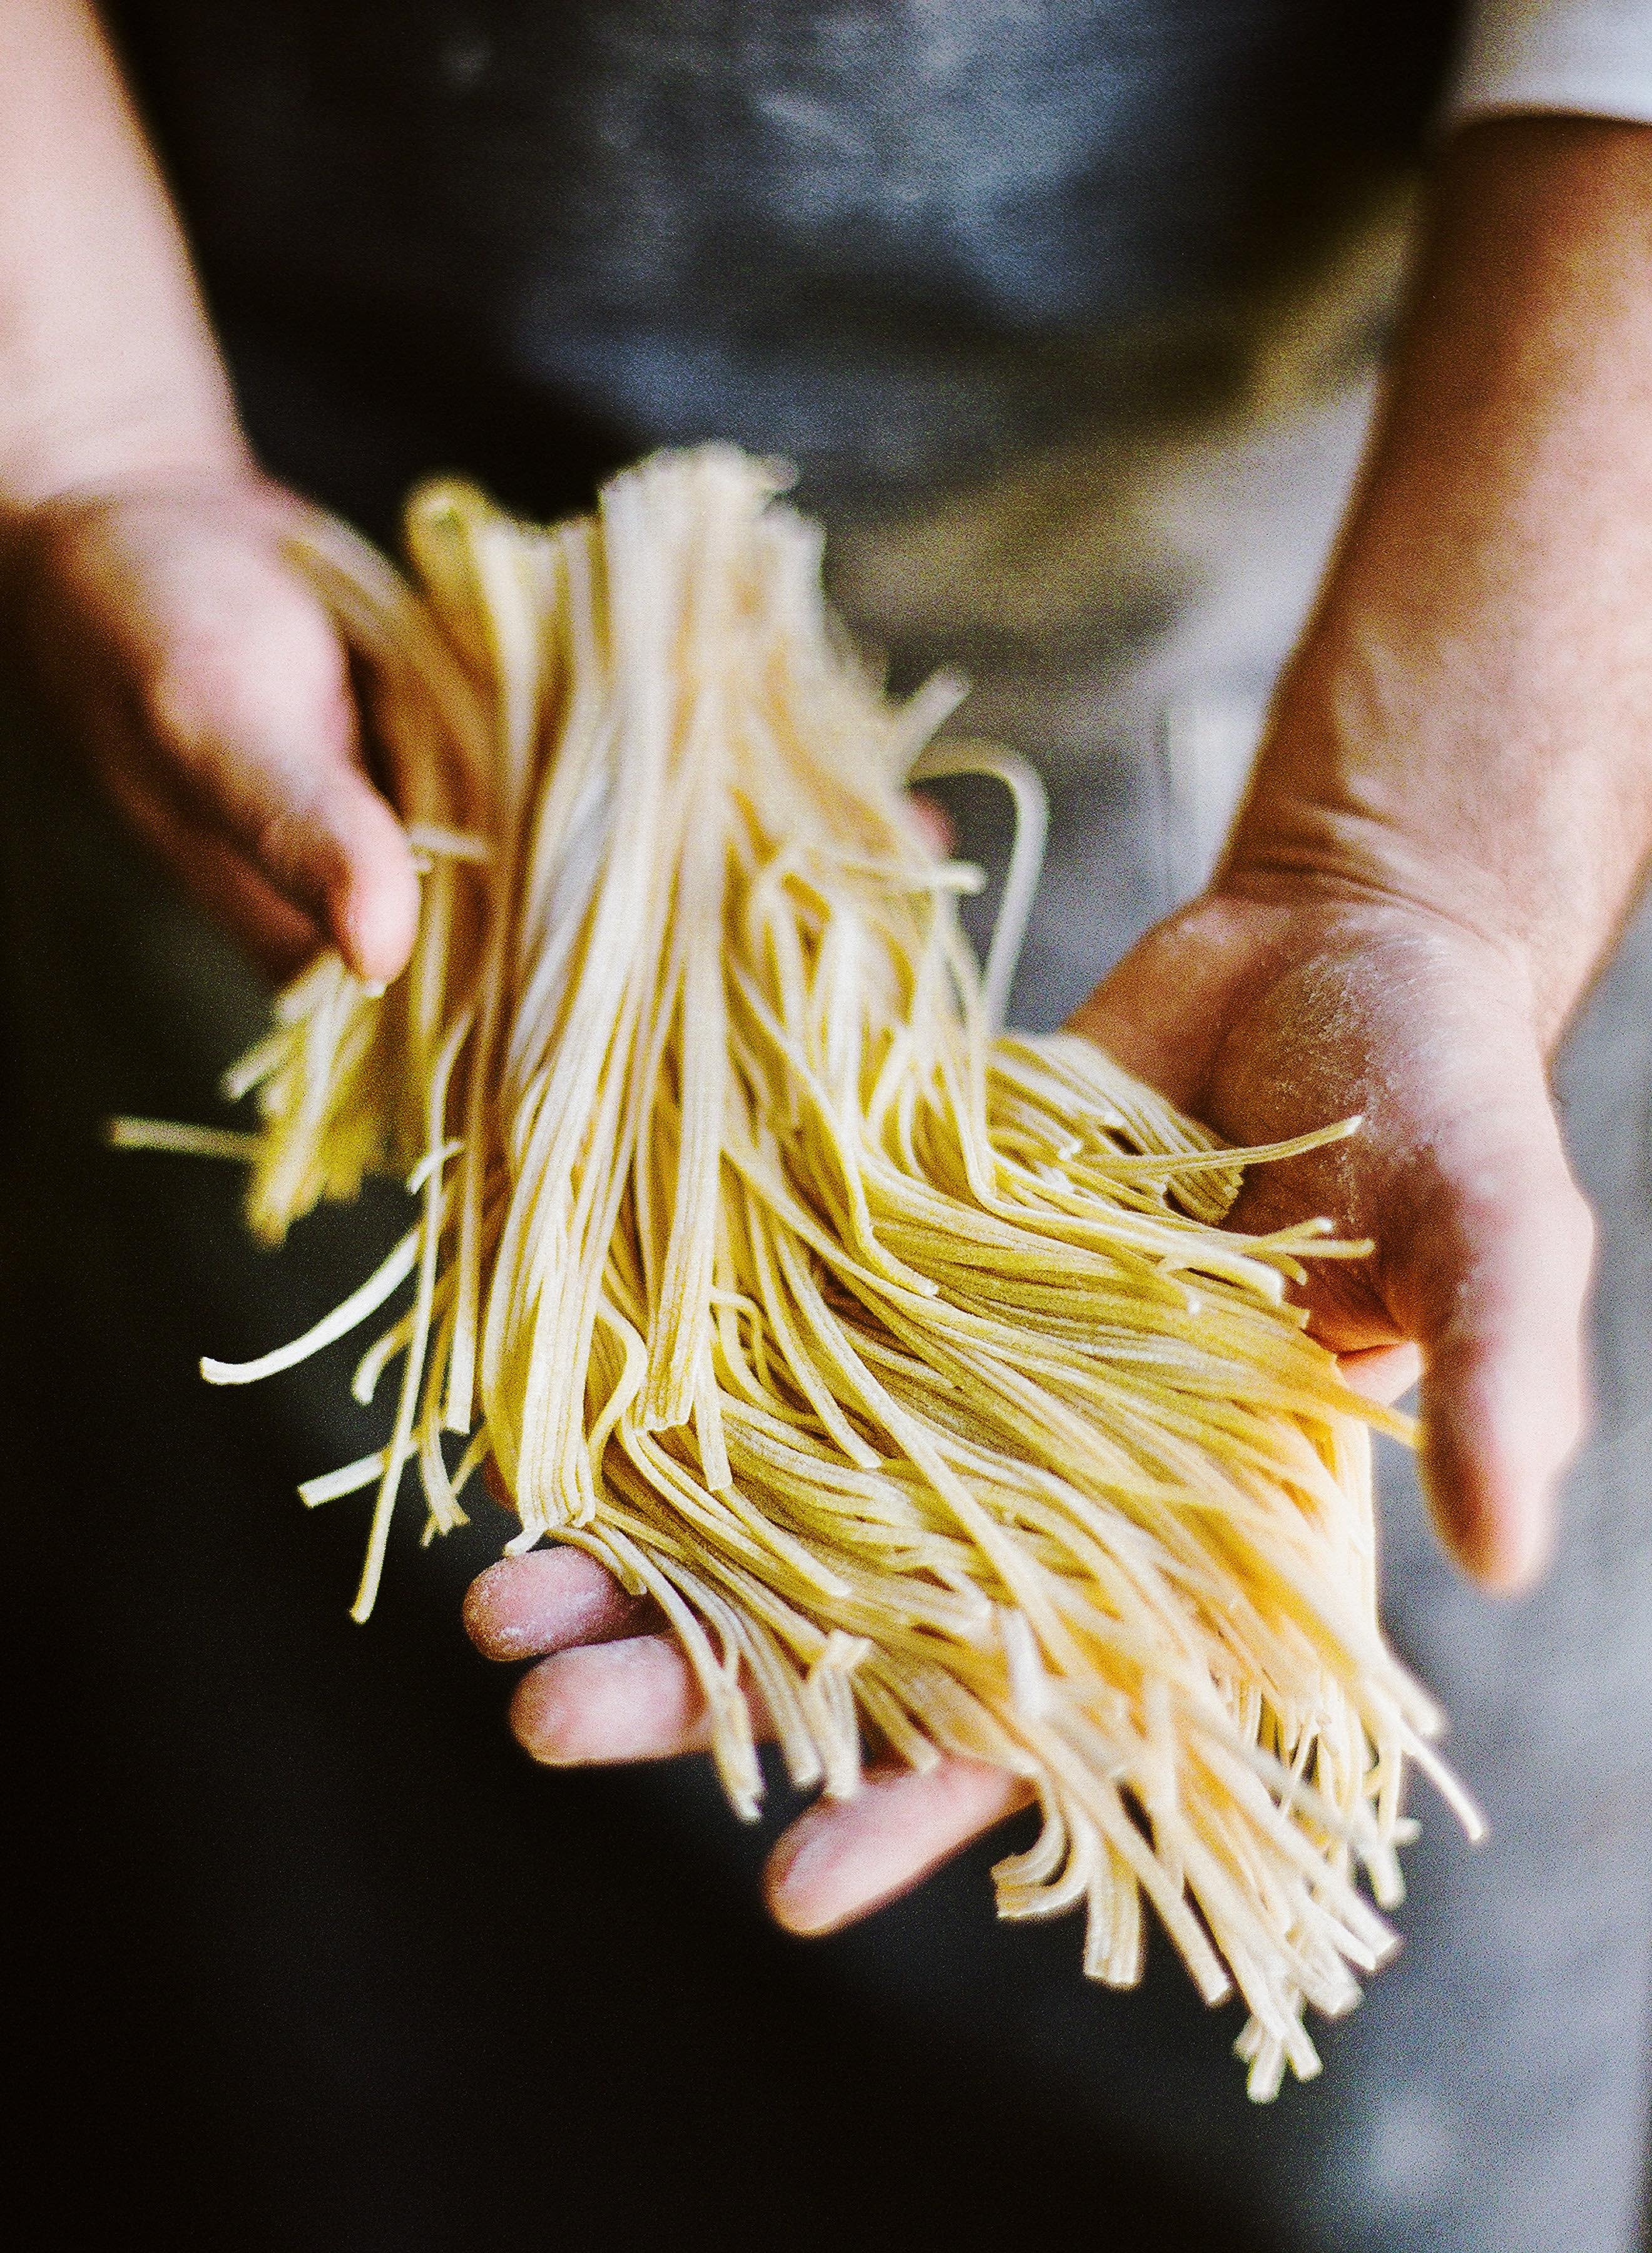 How to Master Making Homemade Pasta